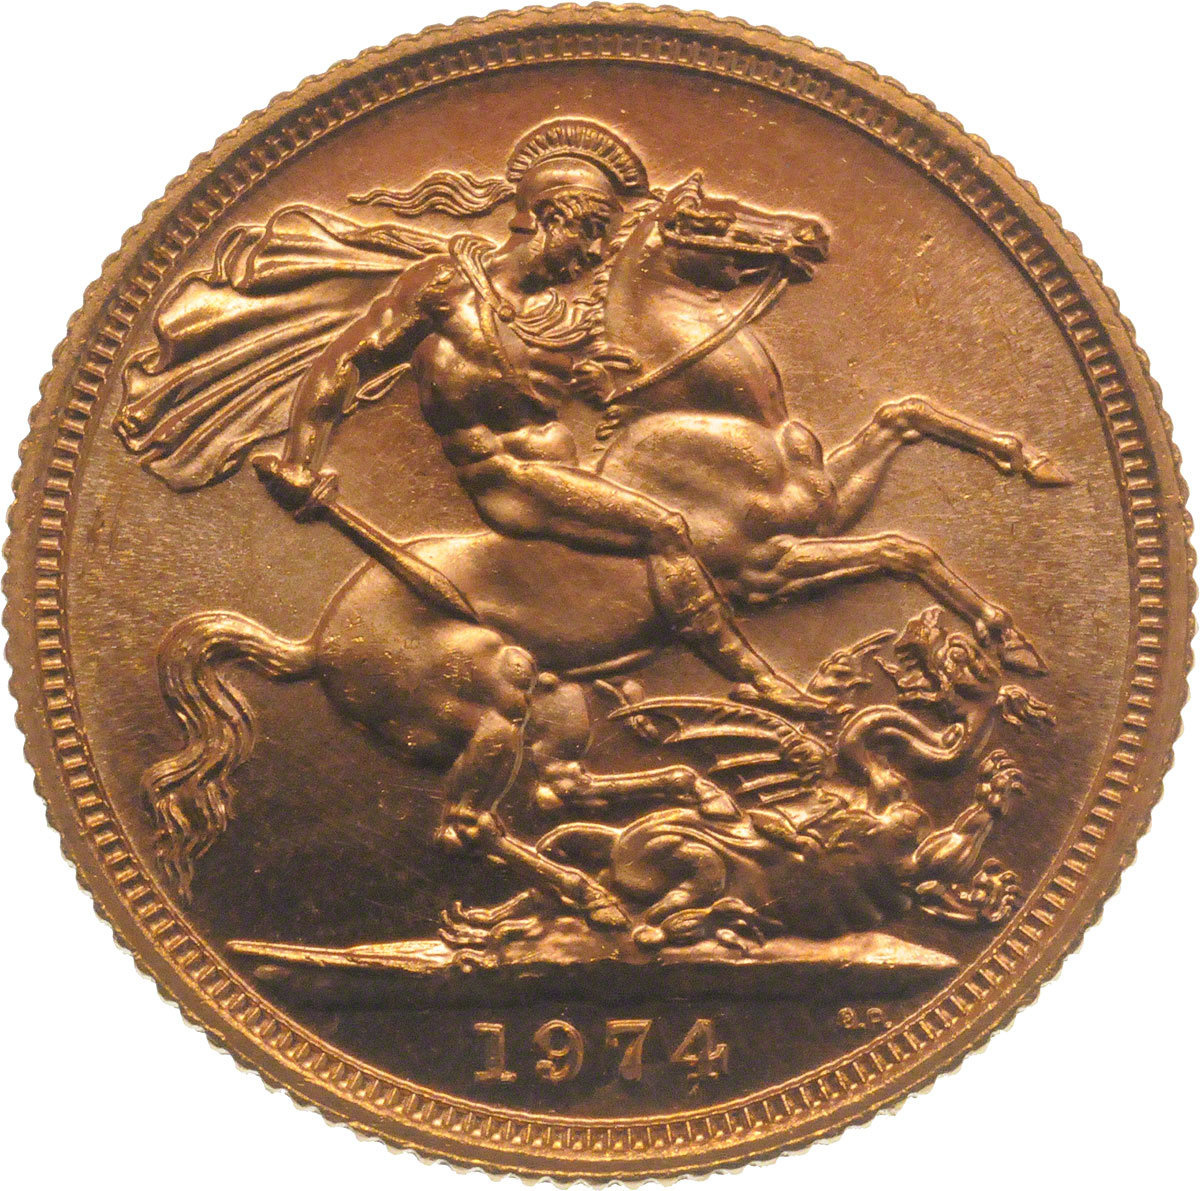 Reverse side of a 1974 gold Sovereign